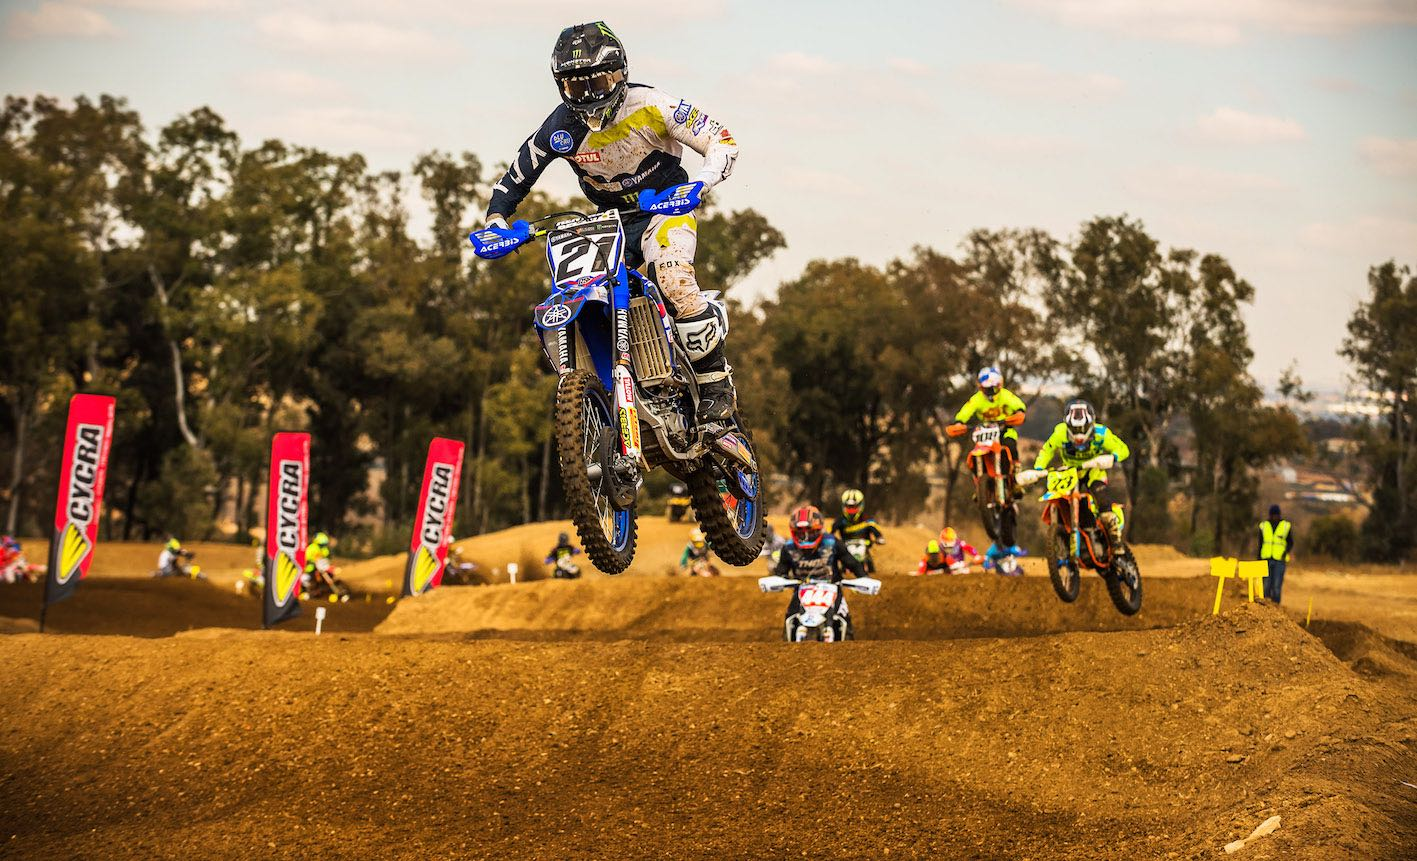 Motocross action at its best at the Terra Topia National